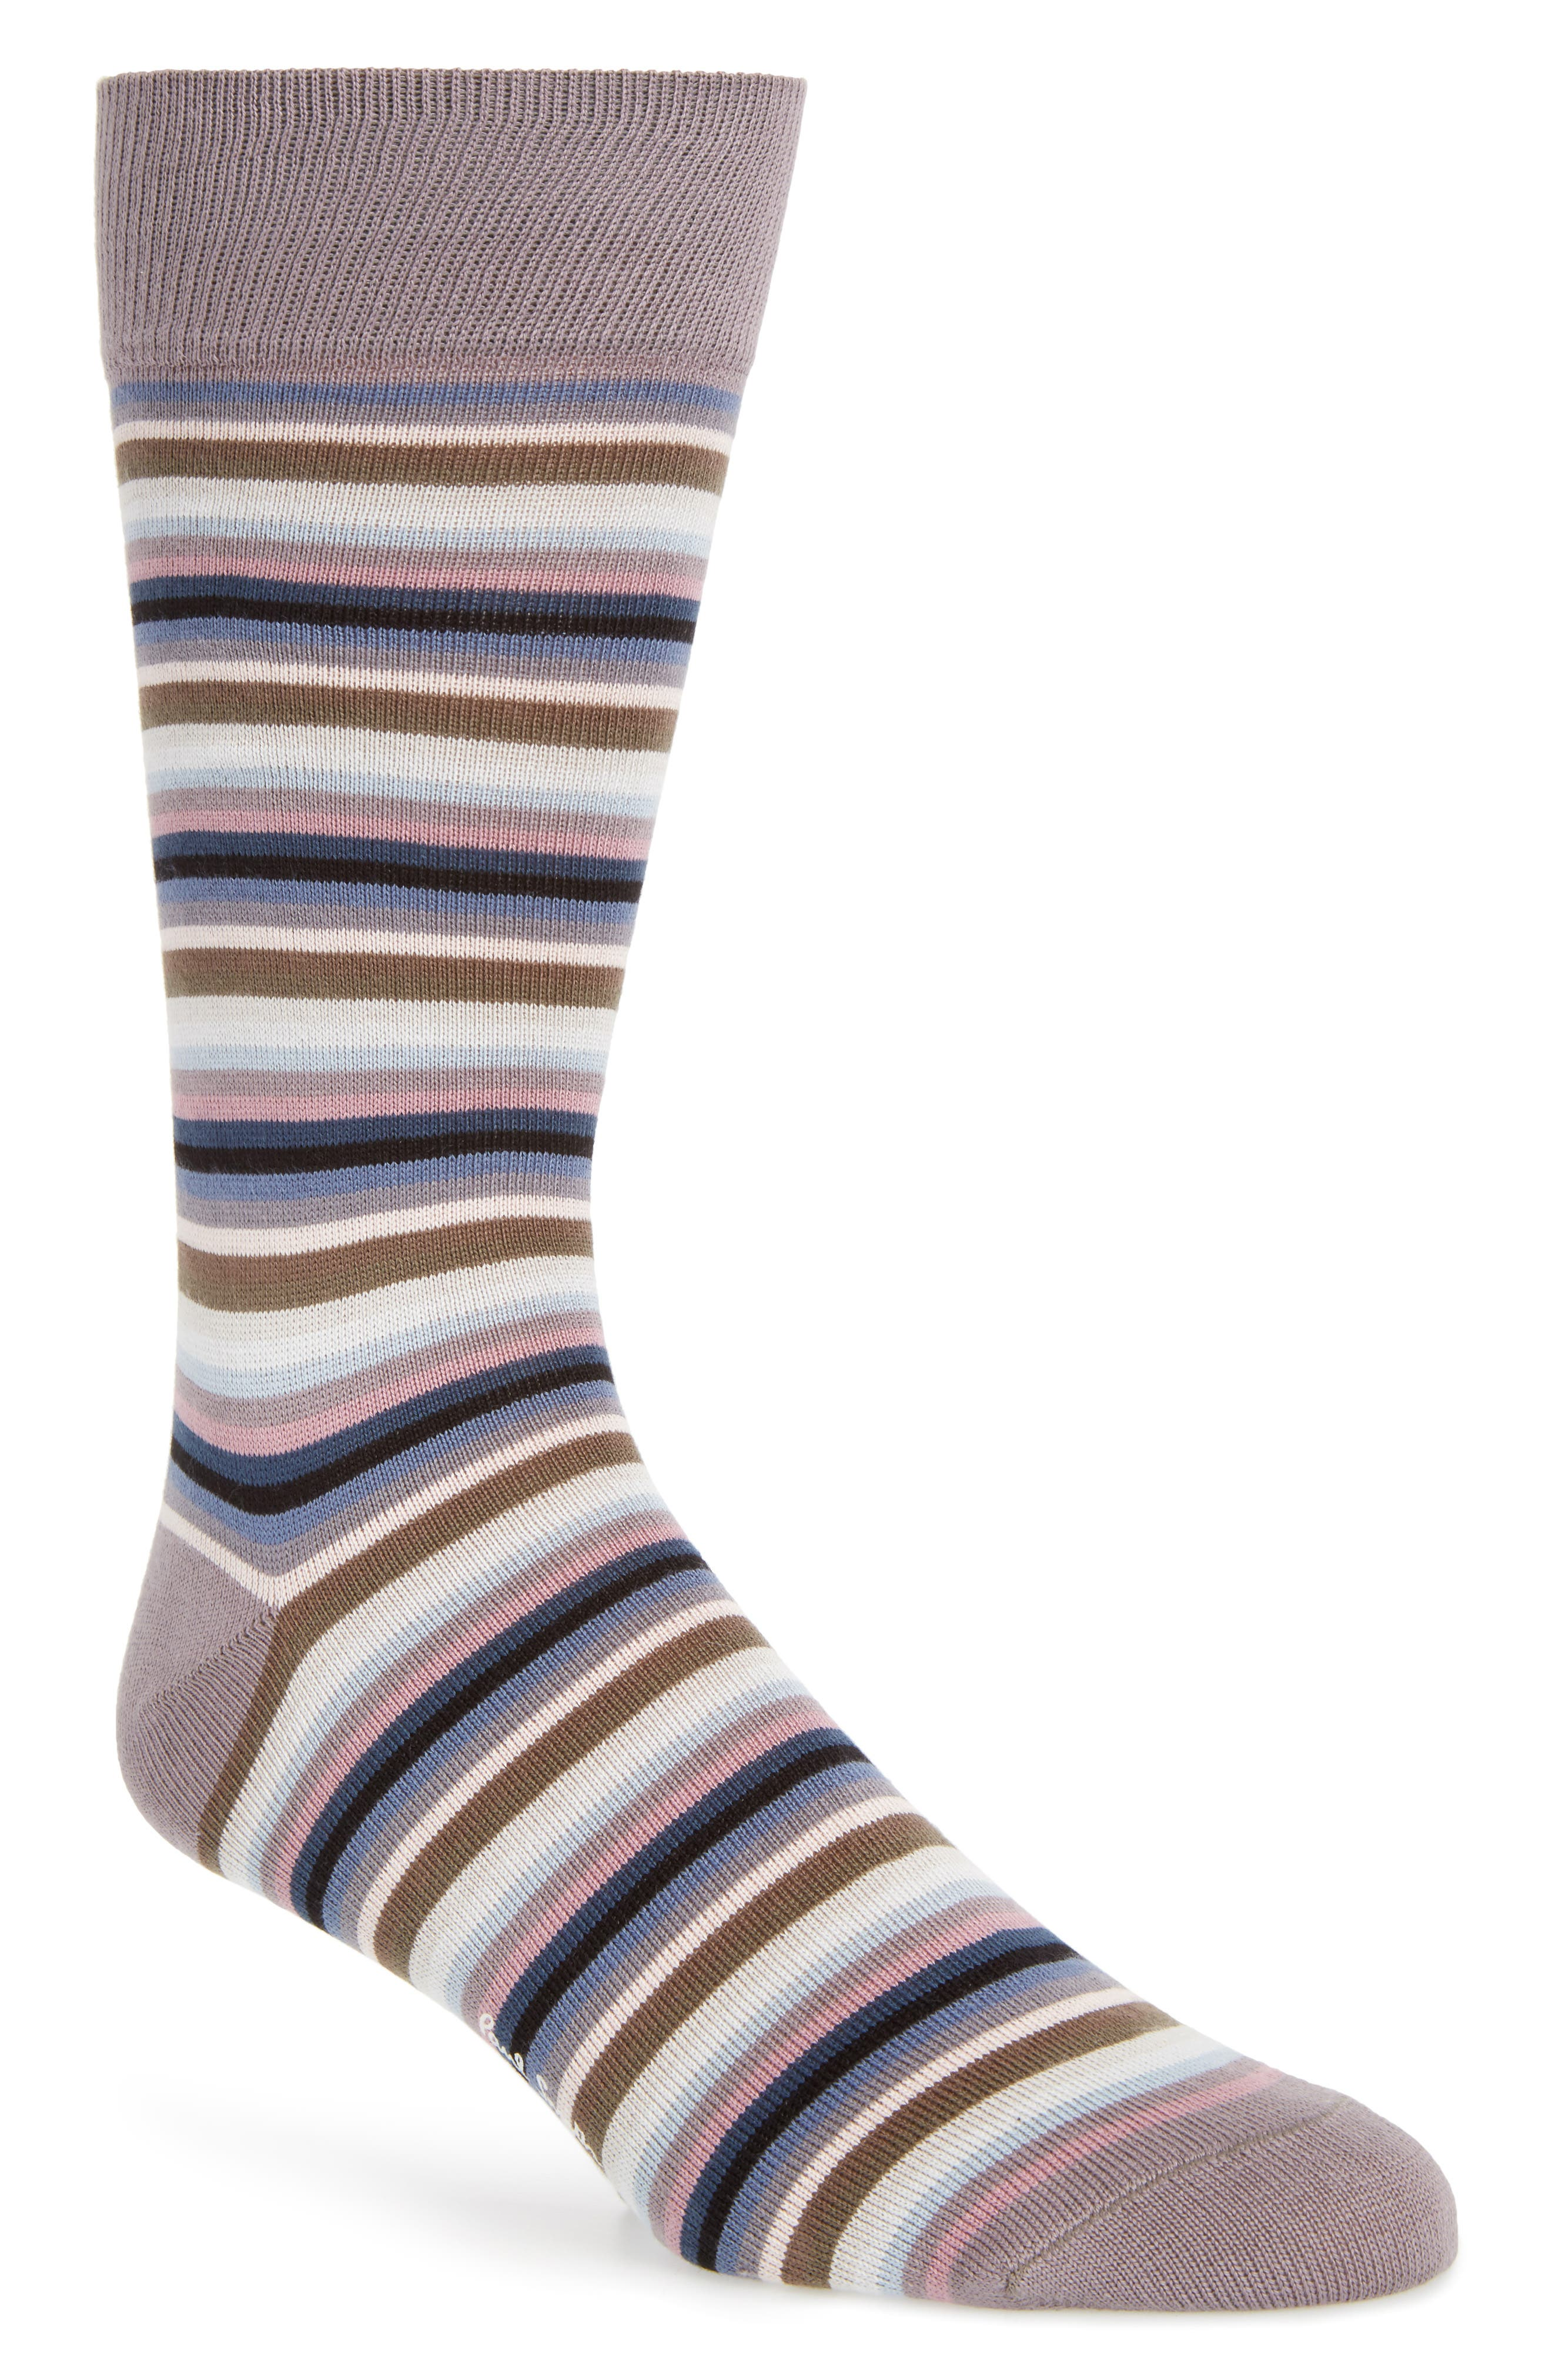 Degradé Stripe Socks,                         Main,                         color, 020